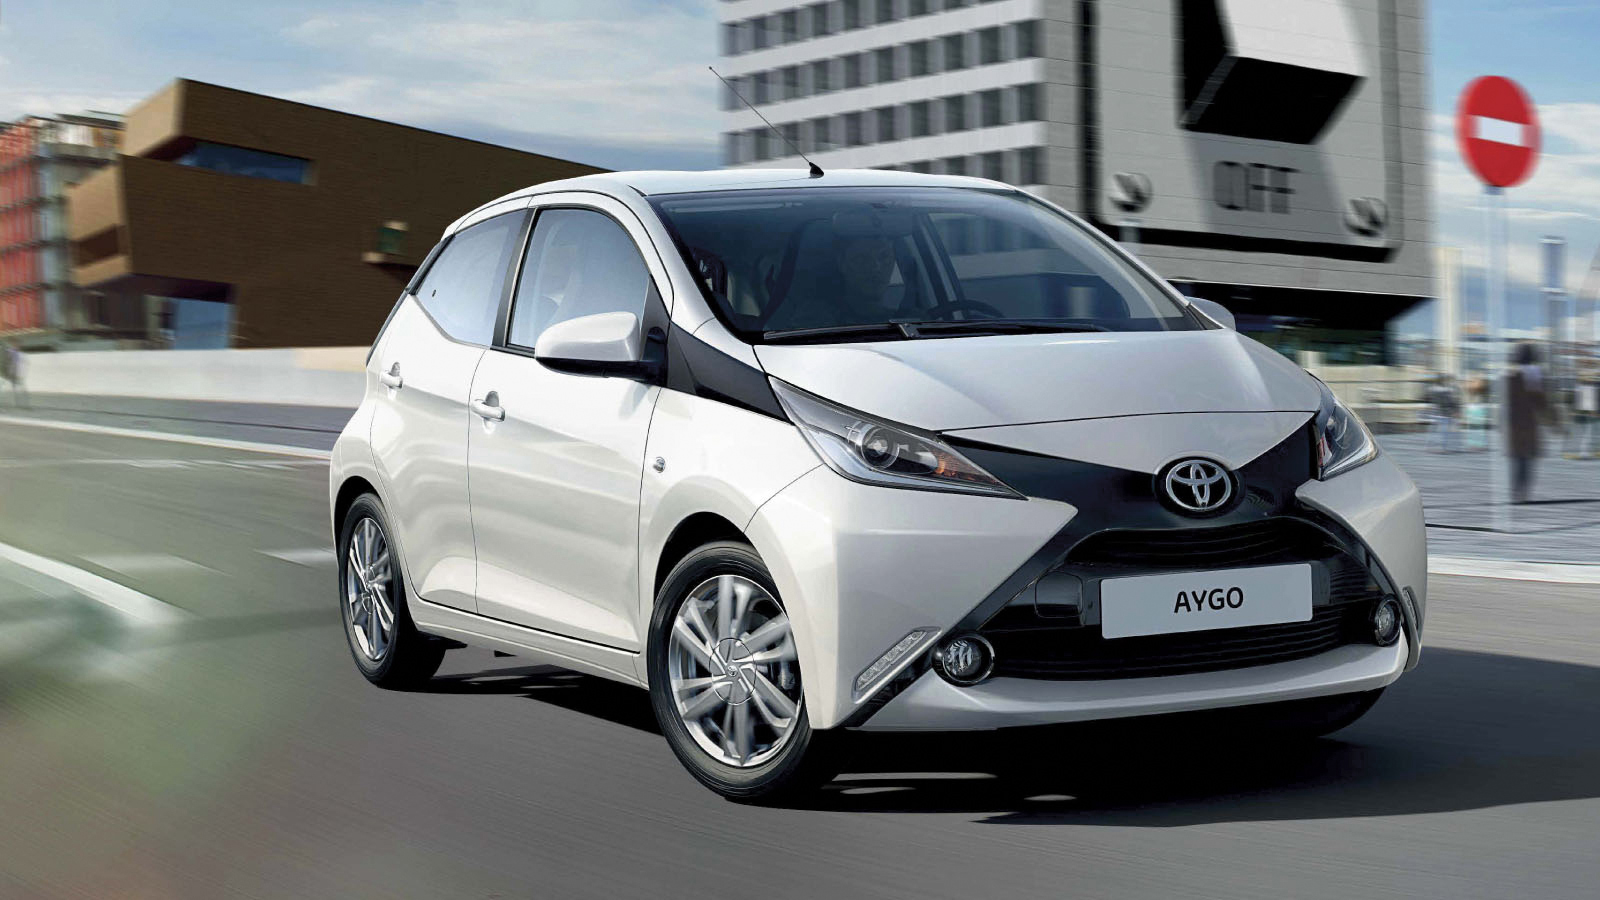 toyota aygo 2015 exterior 2. Black Bedroom Furniture Sets. Home Design Ideas